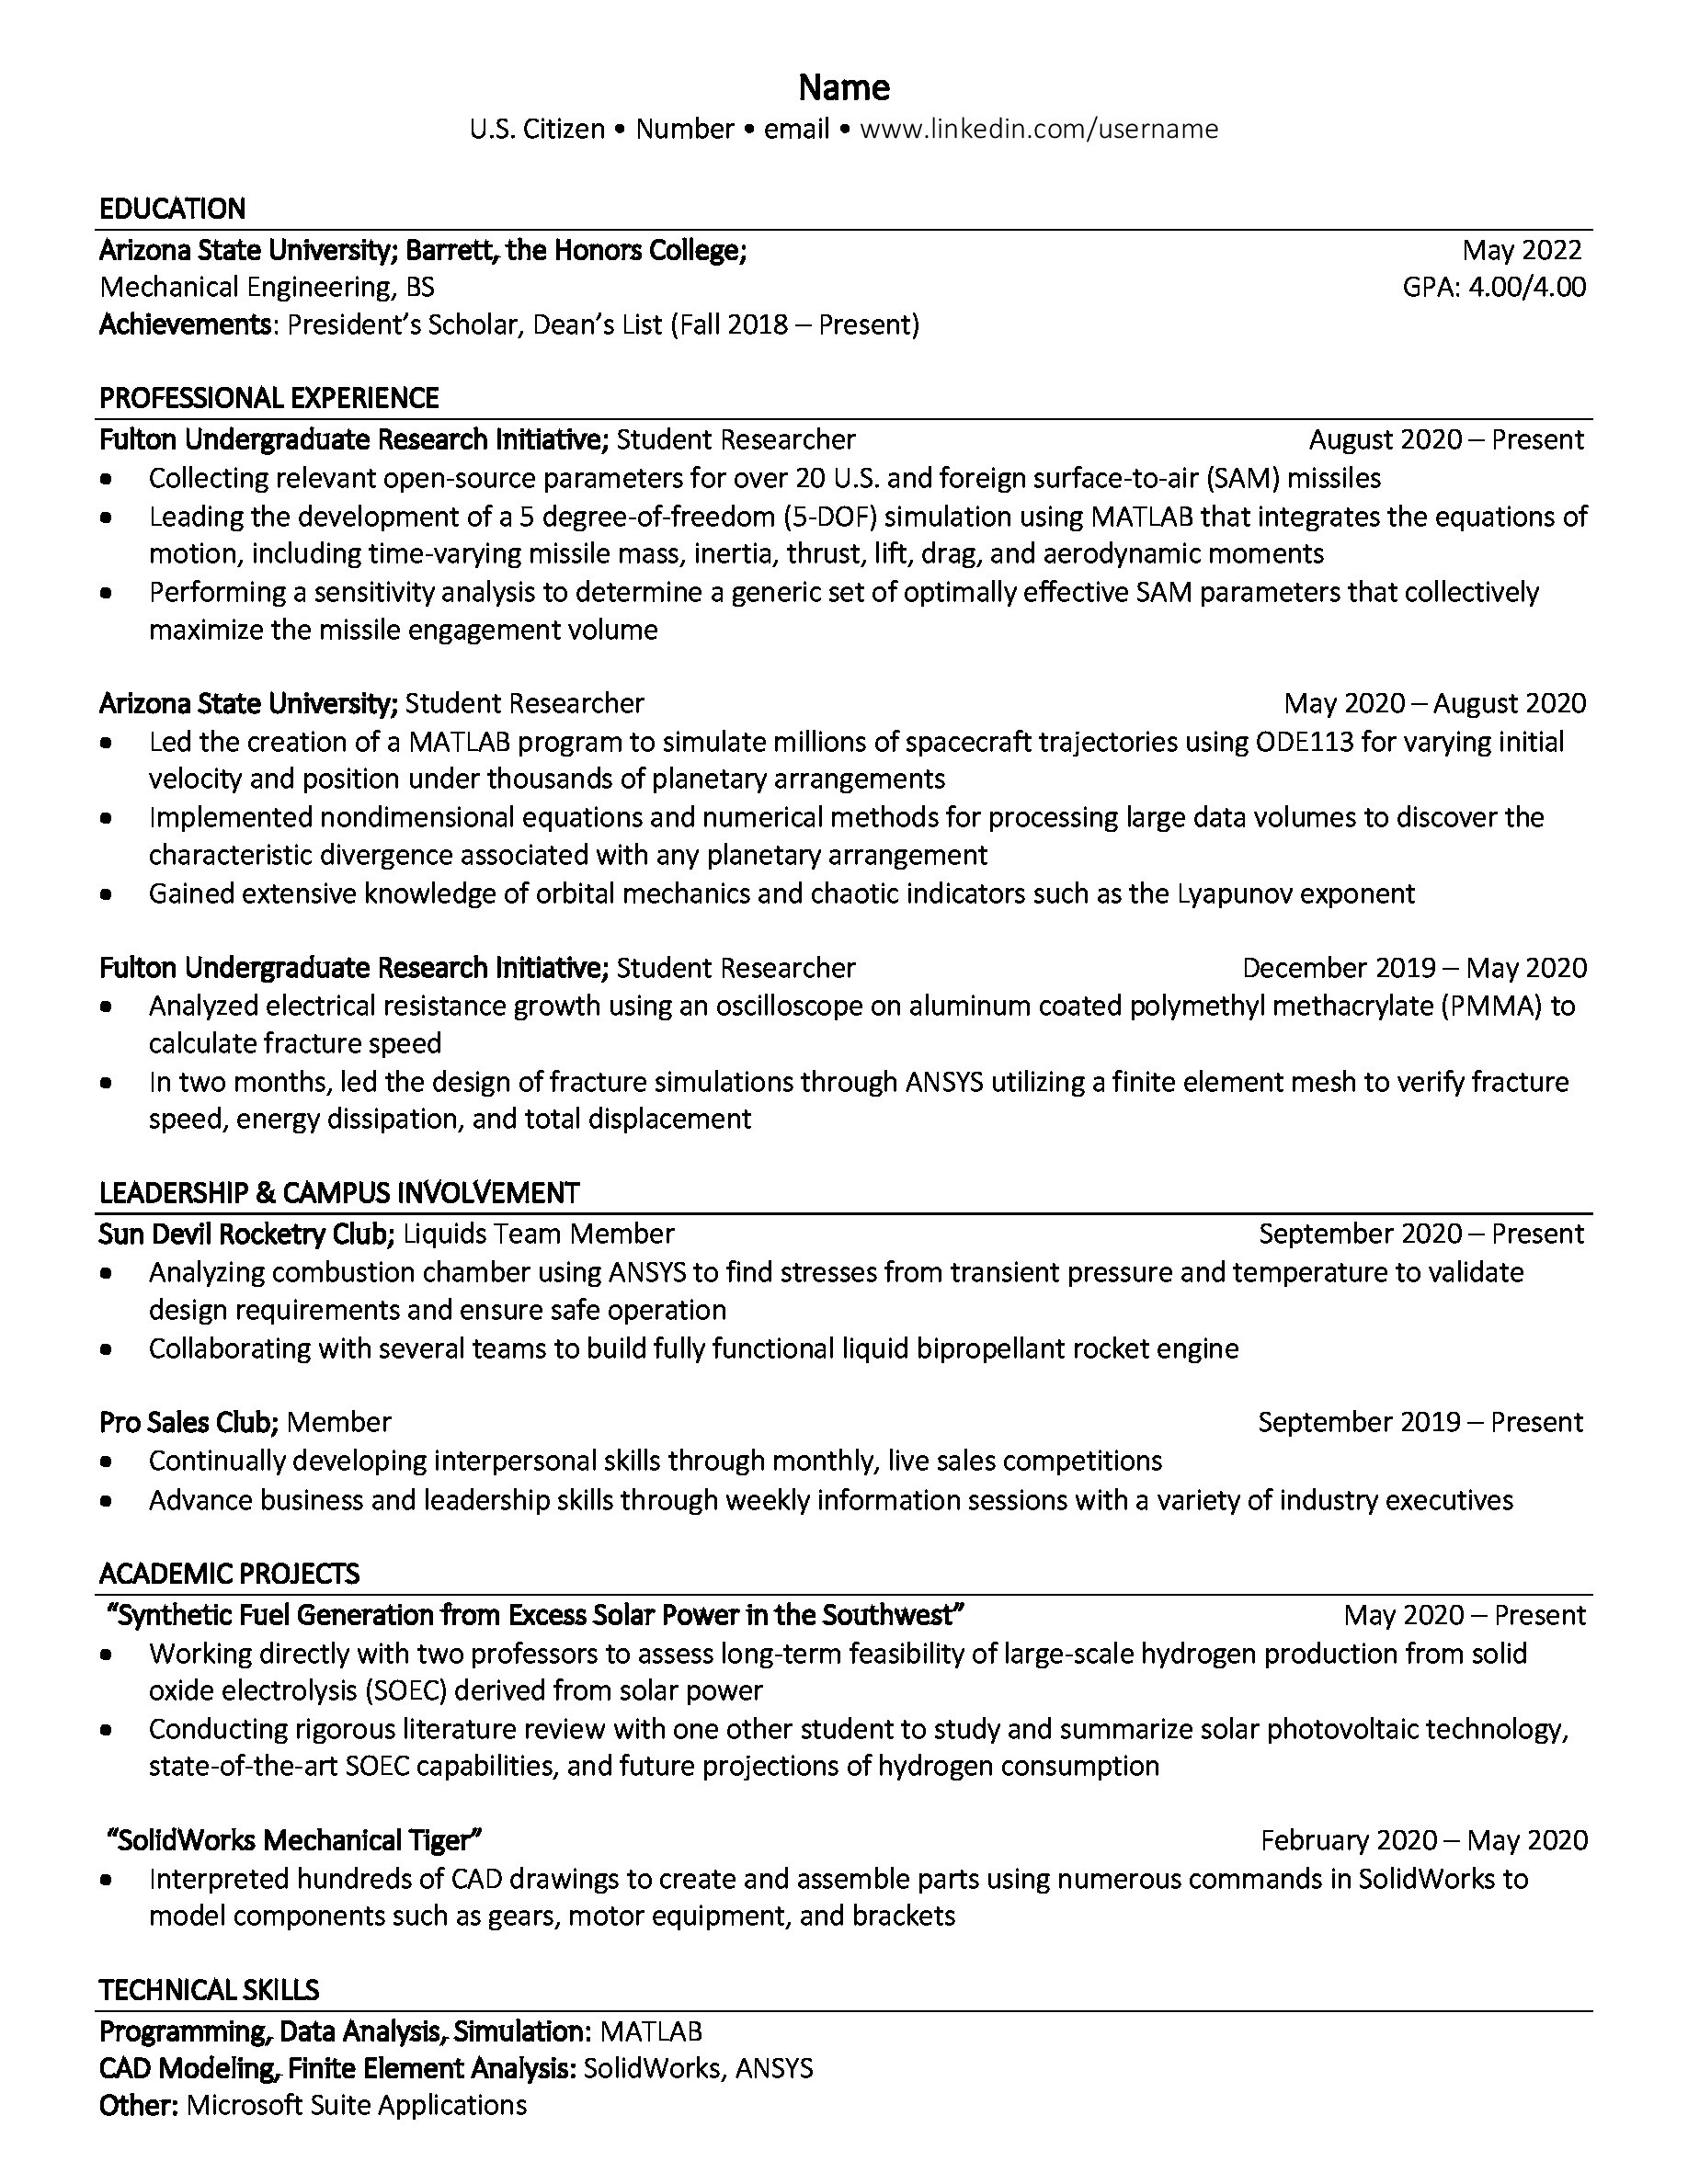 resume reddit edit imgbb programming projects for android years experience vehicle Resume Programming Projects For Resume Reddit